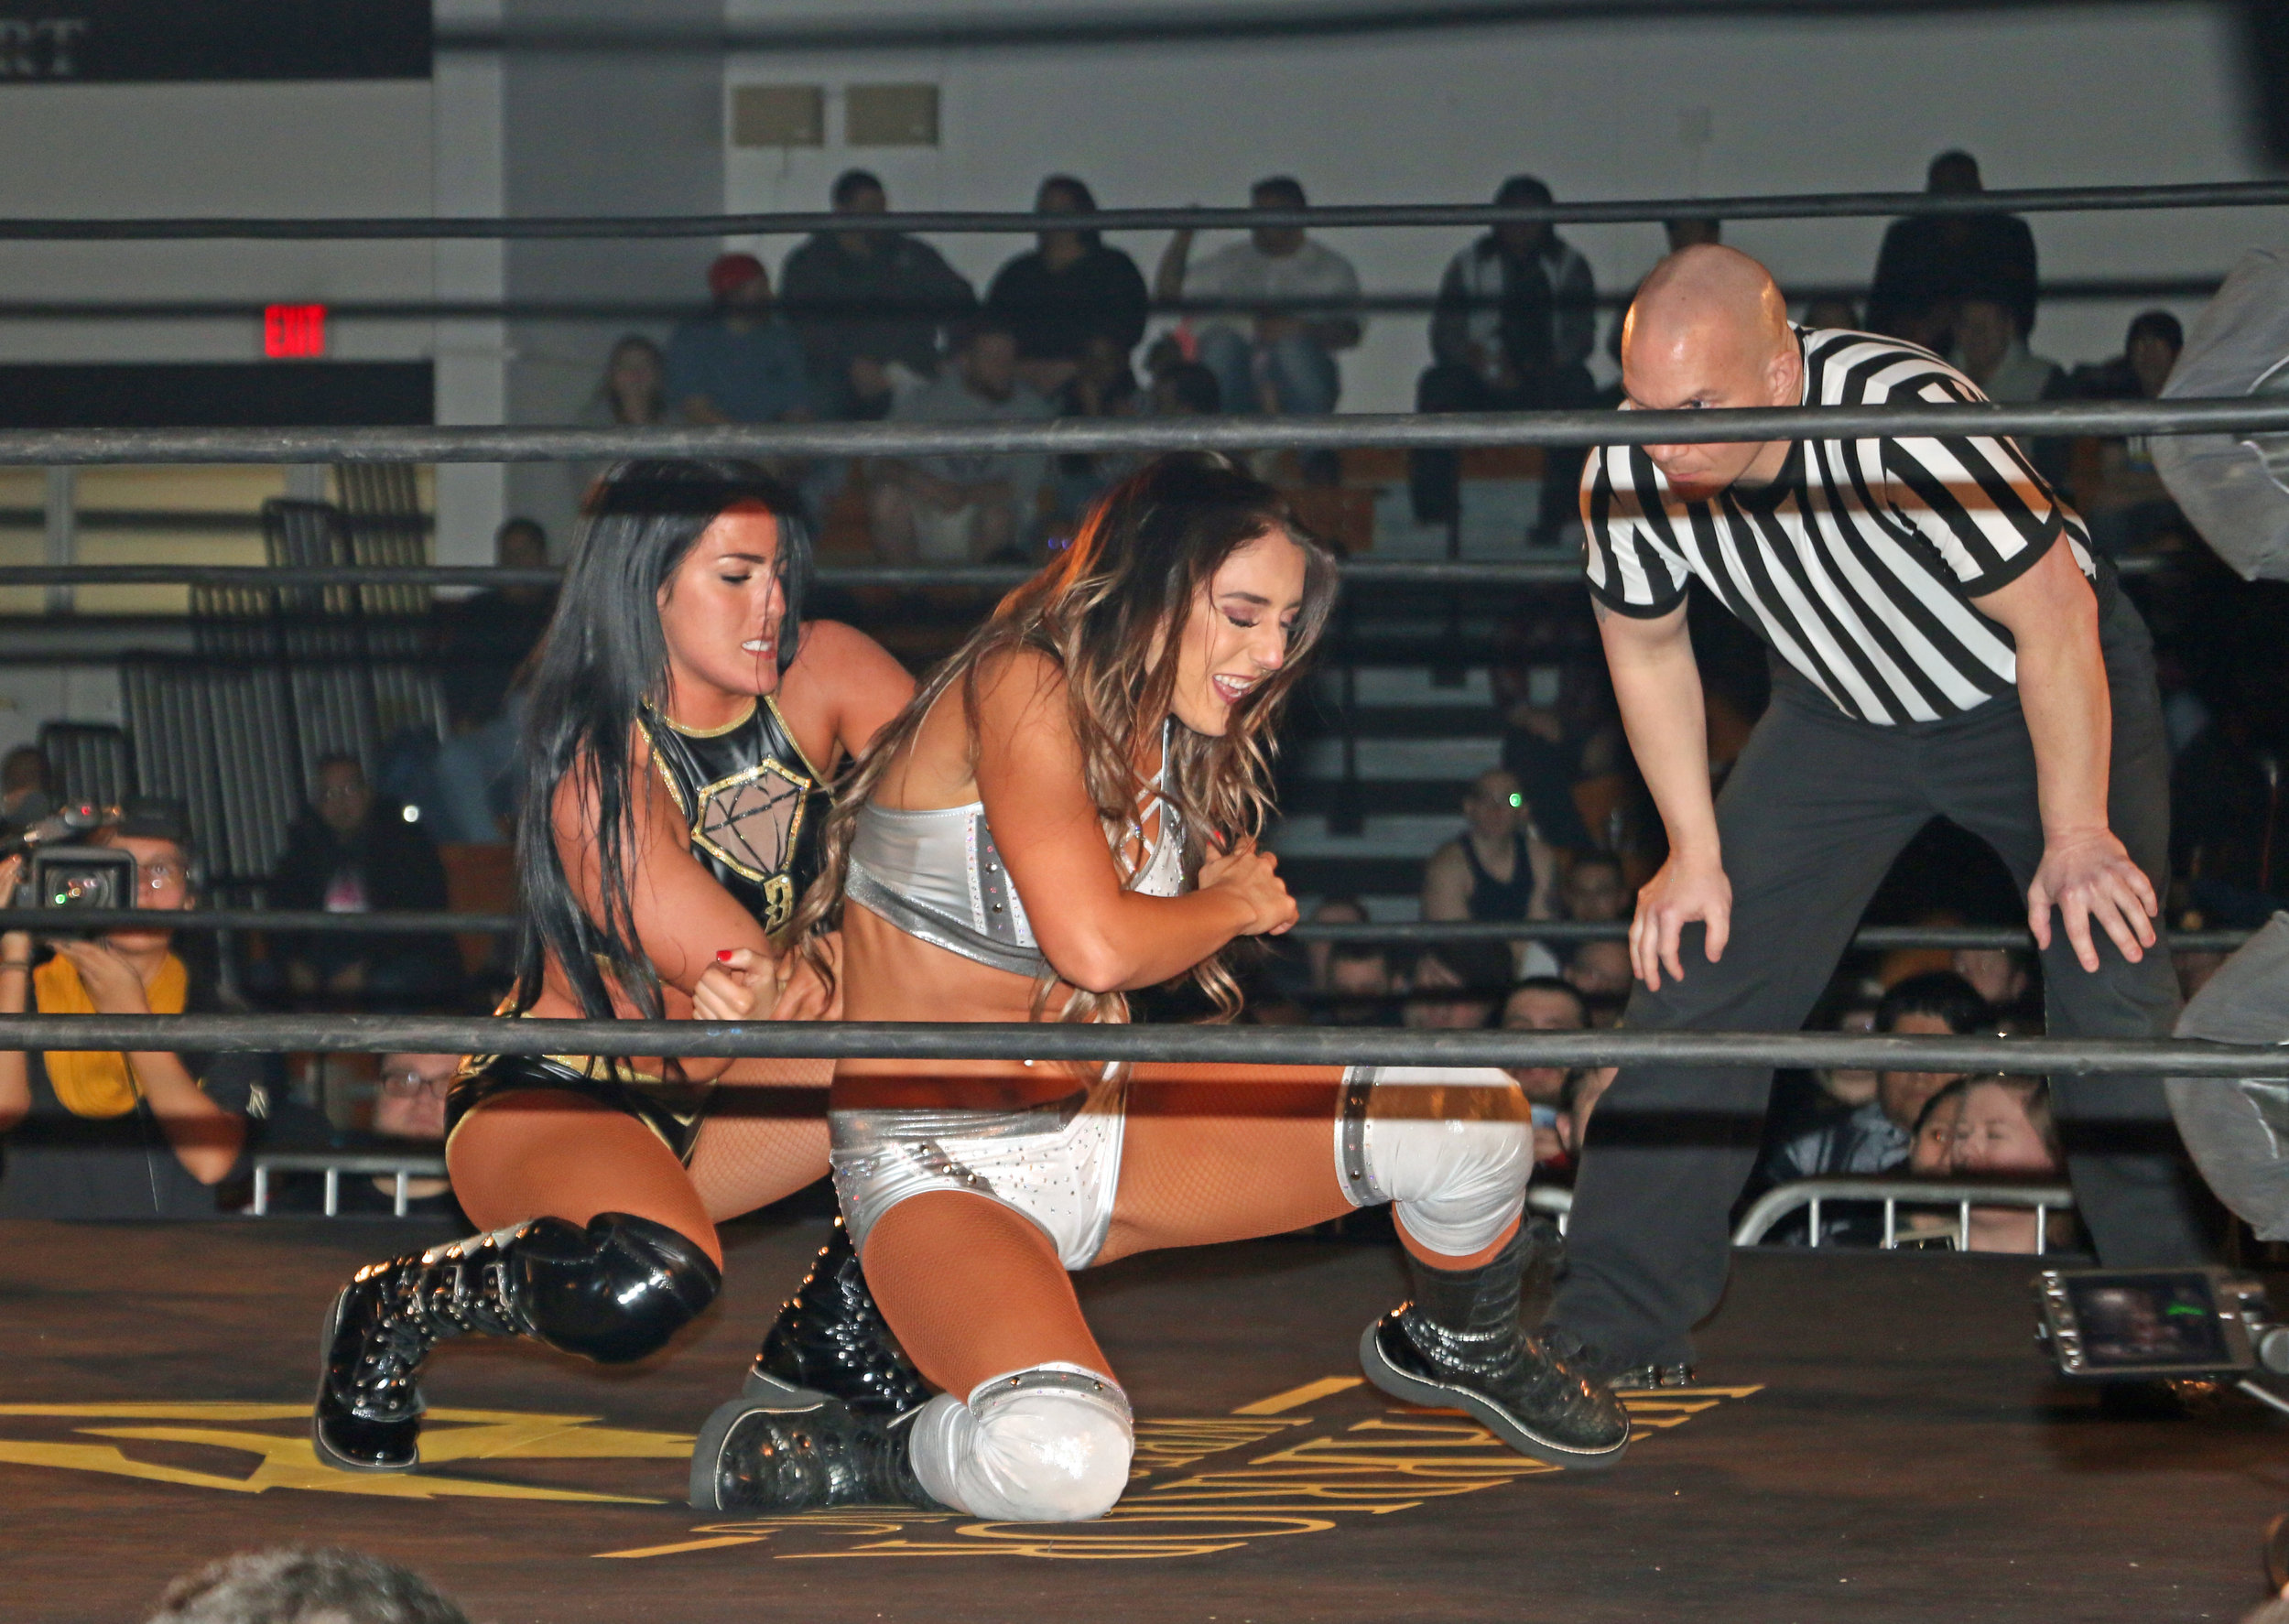 Tessa Blanchard grapples with Dr. Britt Baker during Warrior Wrestling 3 on Jan. 5, 2019. Blanchard, who also has held the IMPACT Wrestling Knockouts Championship, the Zelo Pro Wrestling Women's Championship and the Phoenix of RISE Championship, defeated Baker, Chelsea Green and Madison Rayne at ALL IN in Hoffman Estates, Ill., last summer.  (Photo by Mike Pankow)